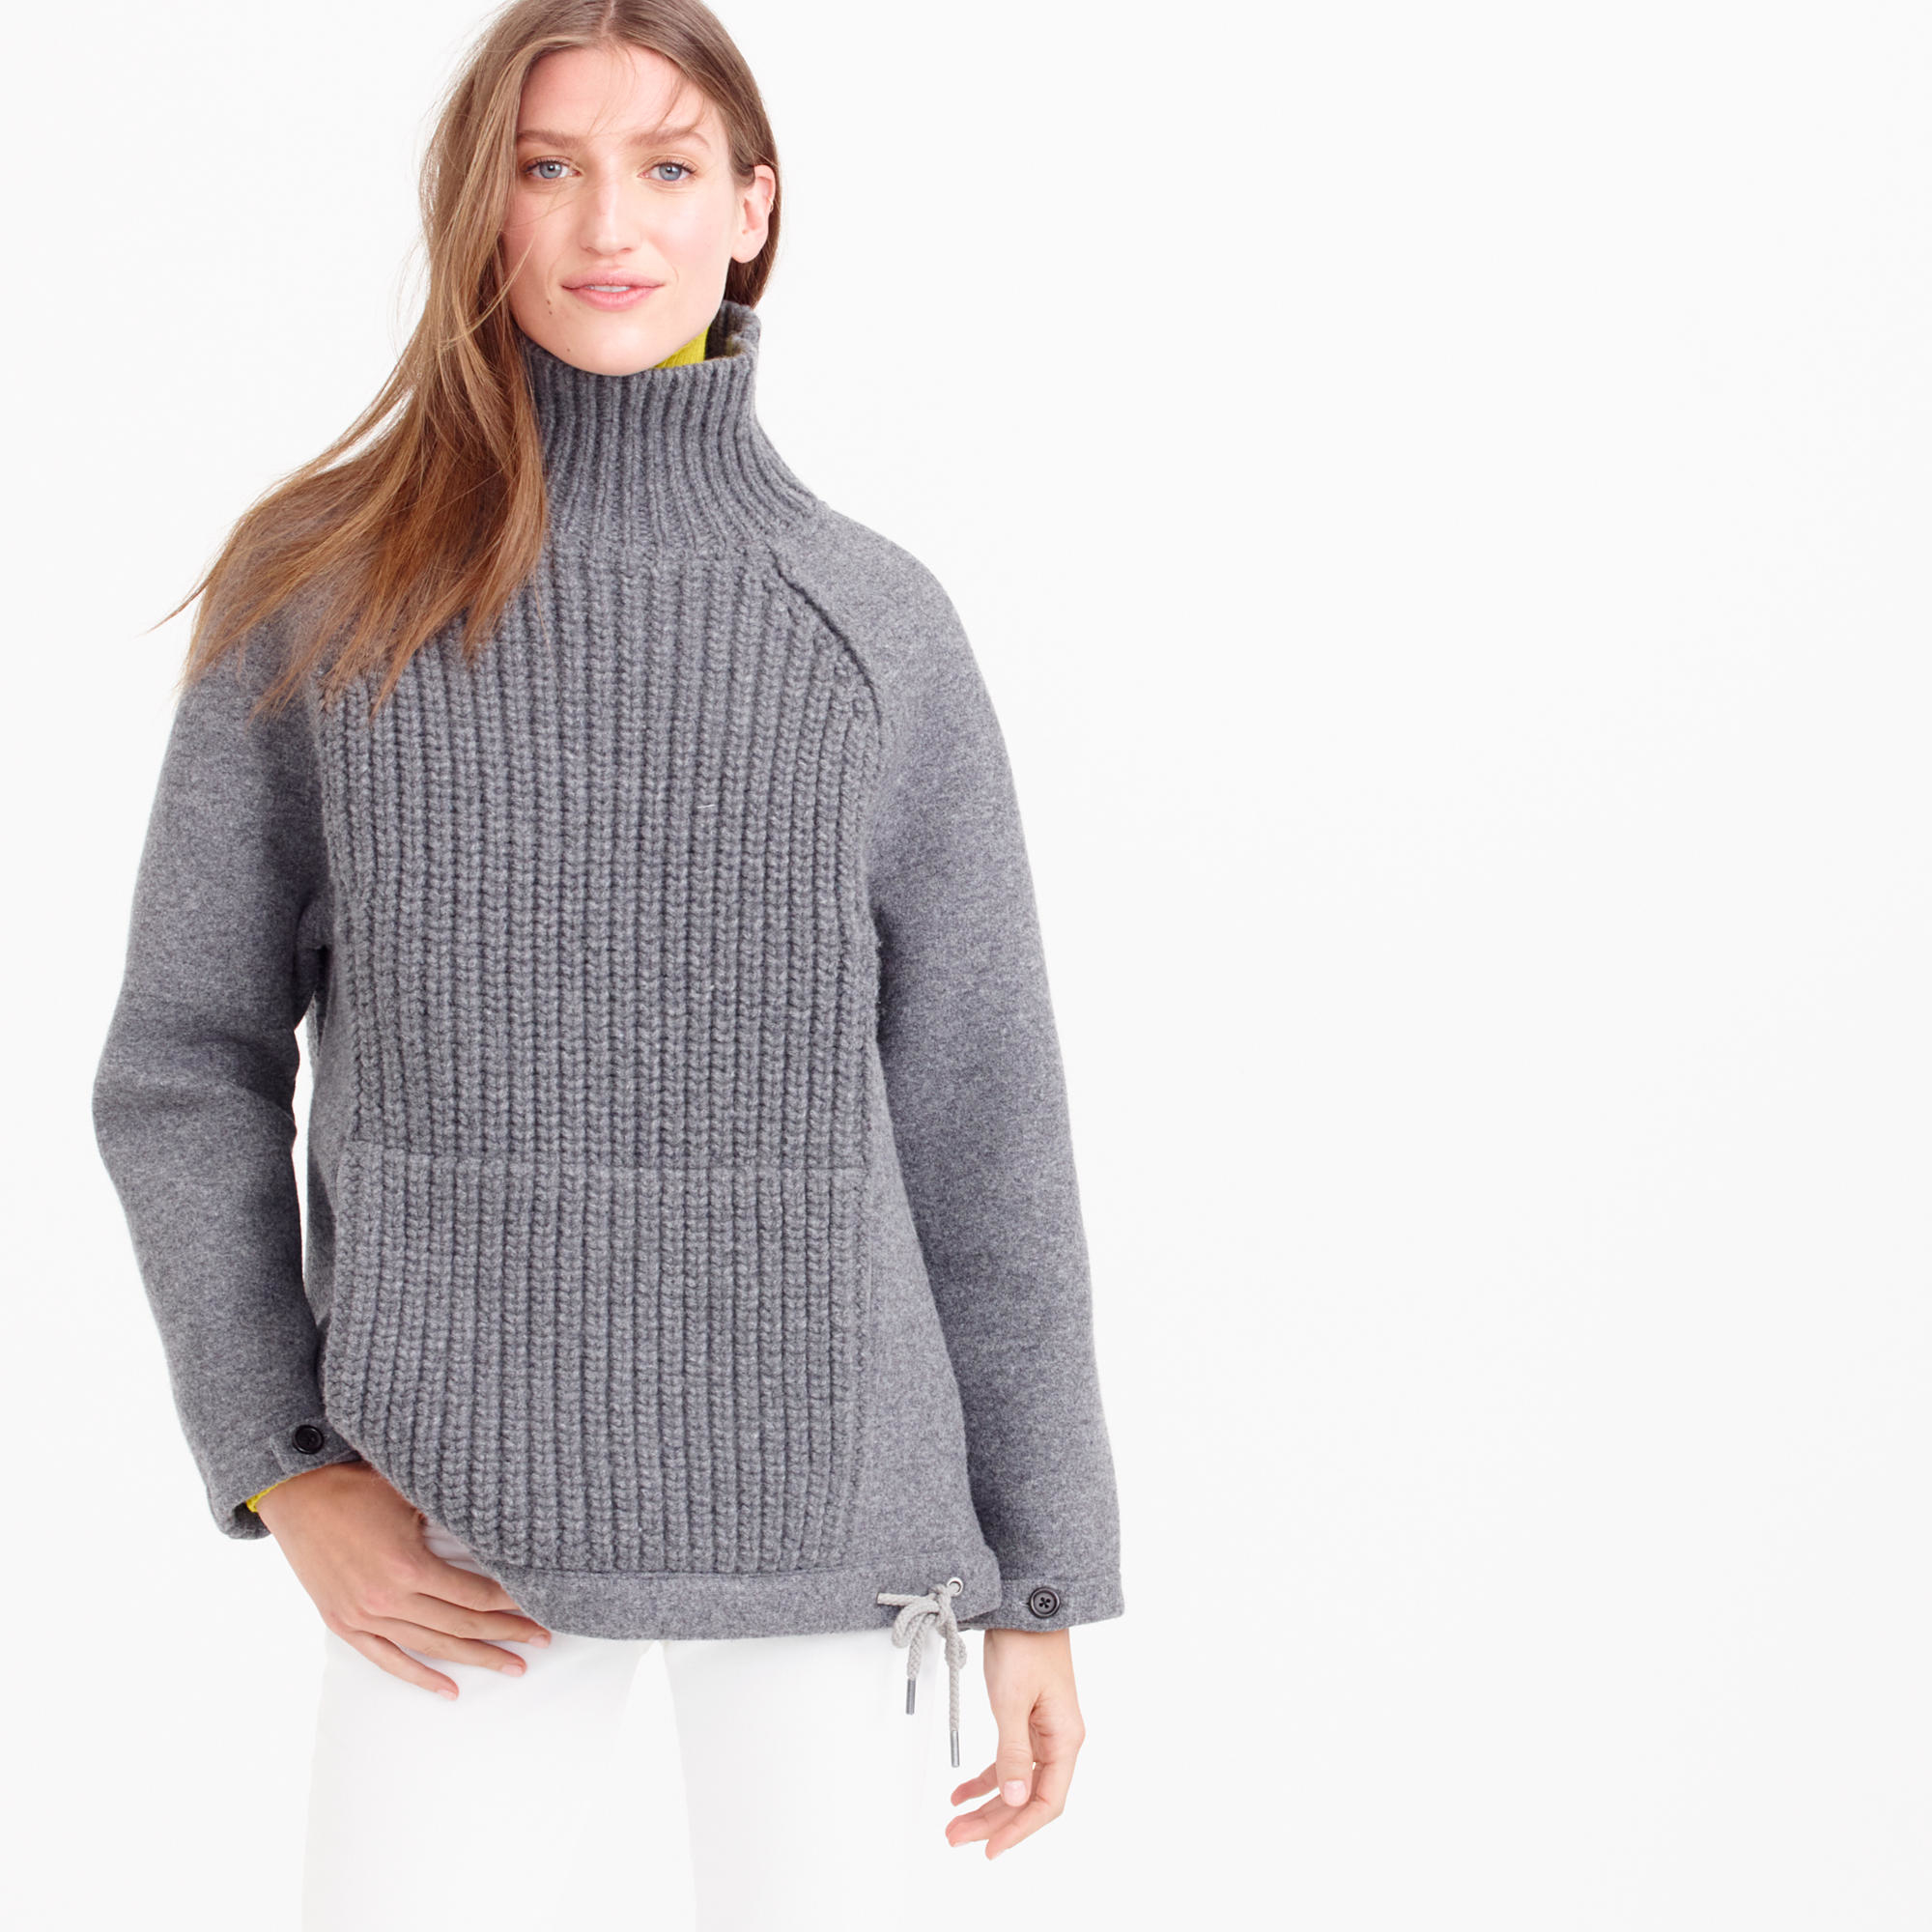 c3a83e6578 Lyst - J.Crew Collection Wool-neoprene Knit Turtleneck Sweater in Gray